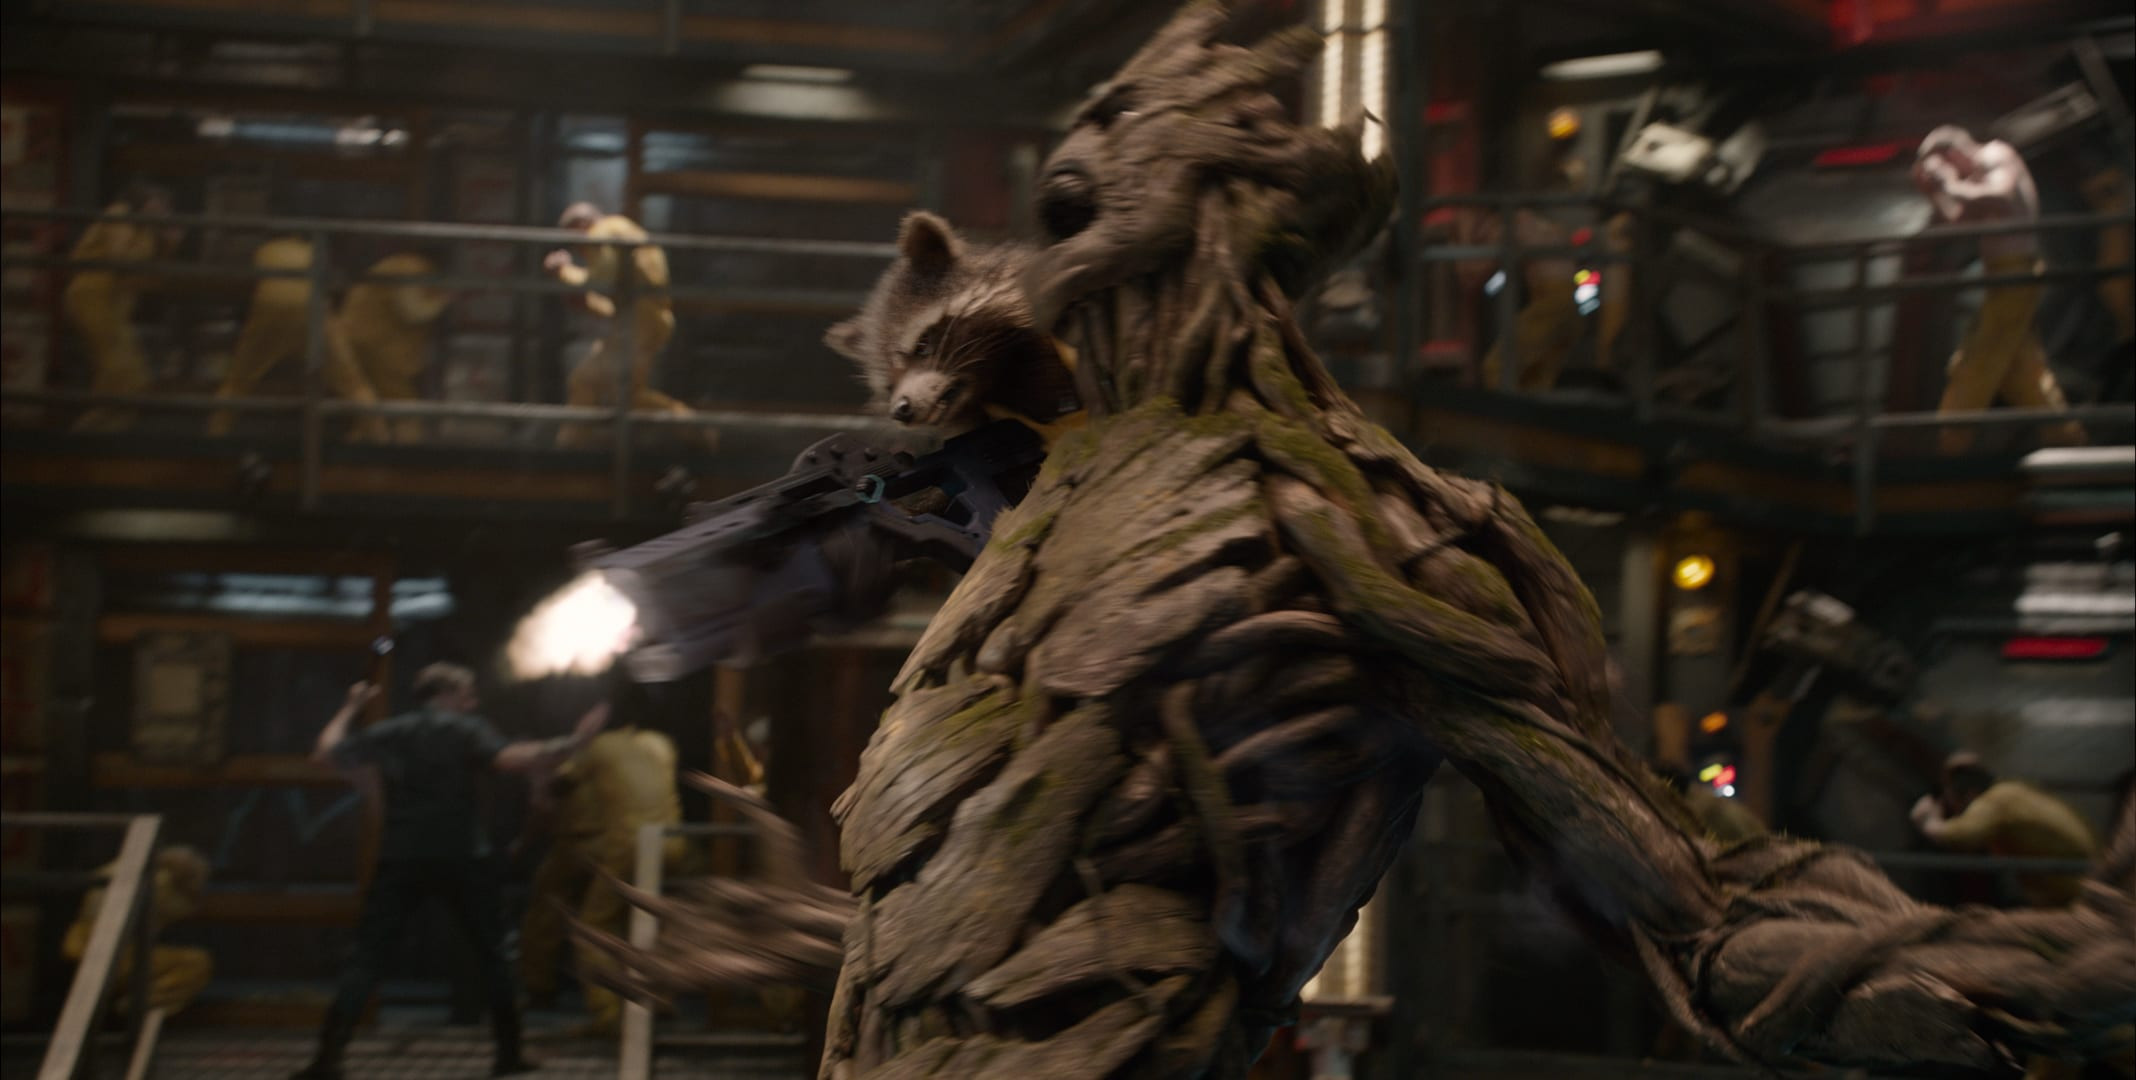 Rocket riding on Groots shoulder while shooting enemies in the movie Guardians of the Galaxy